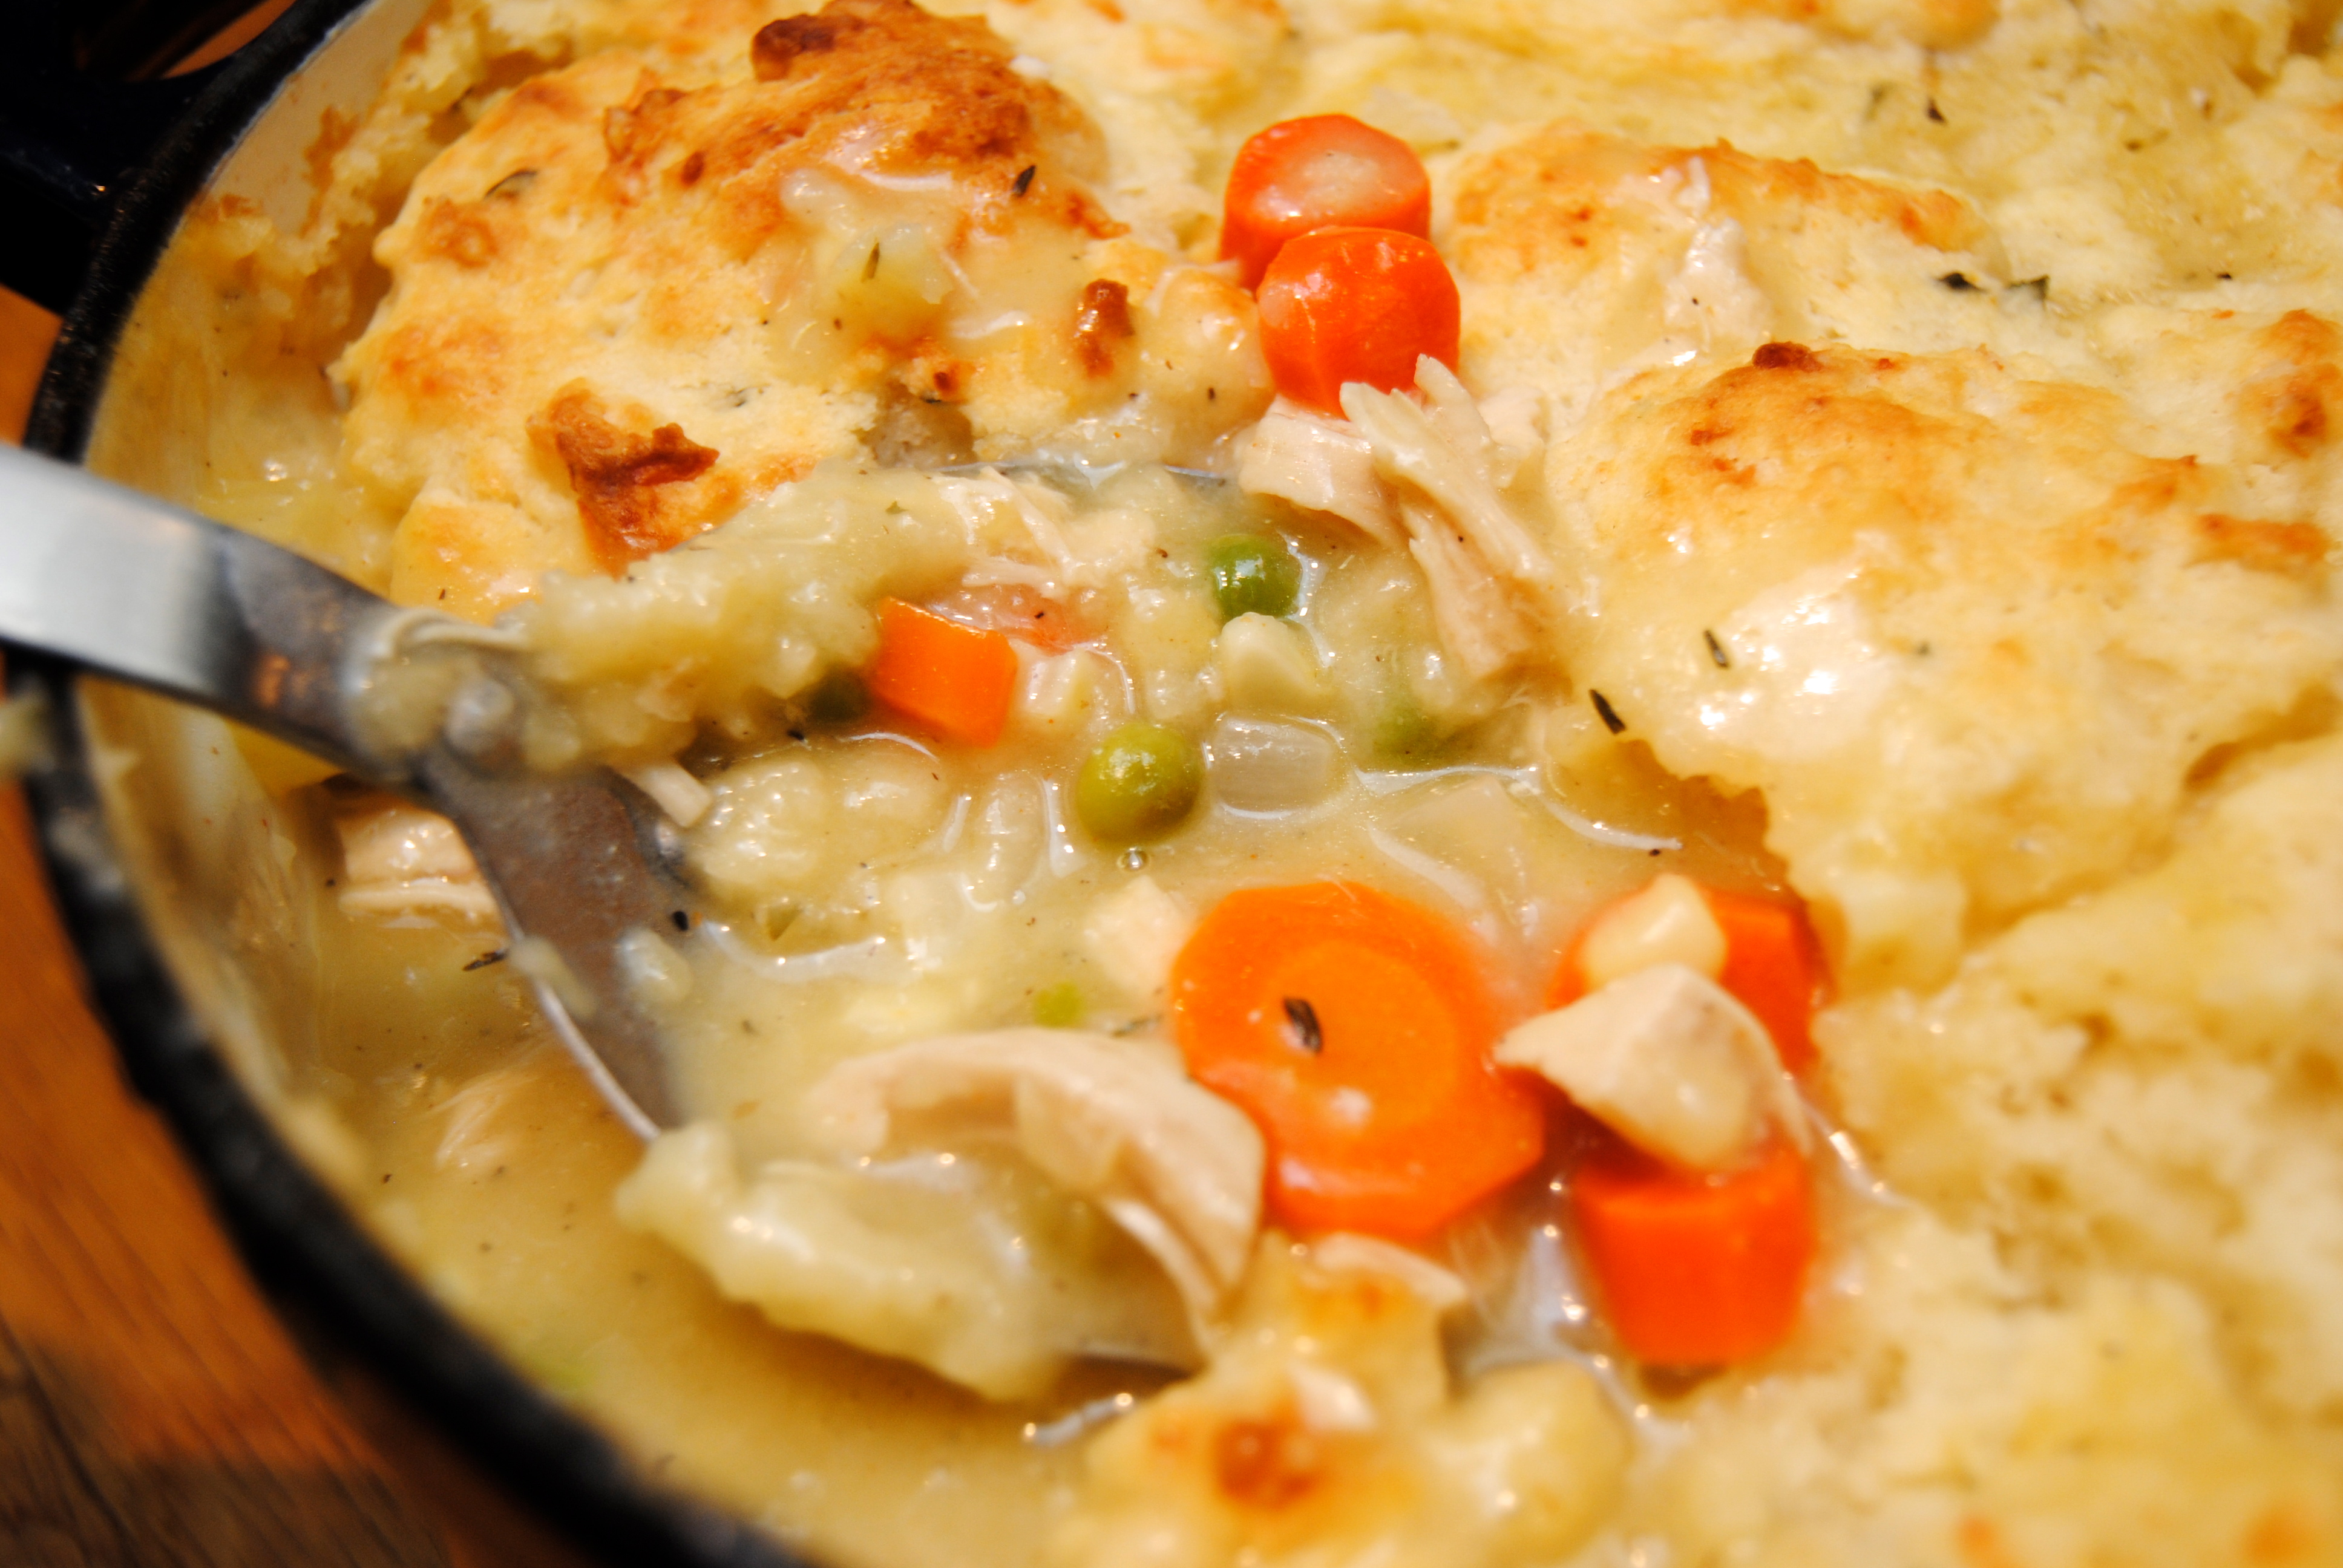 Chicken Pot Pie Recipes Using Biscuits